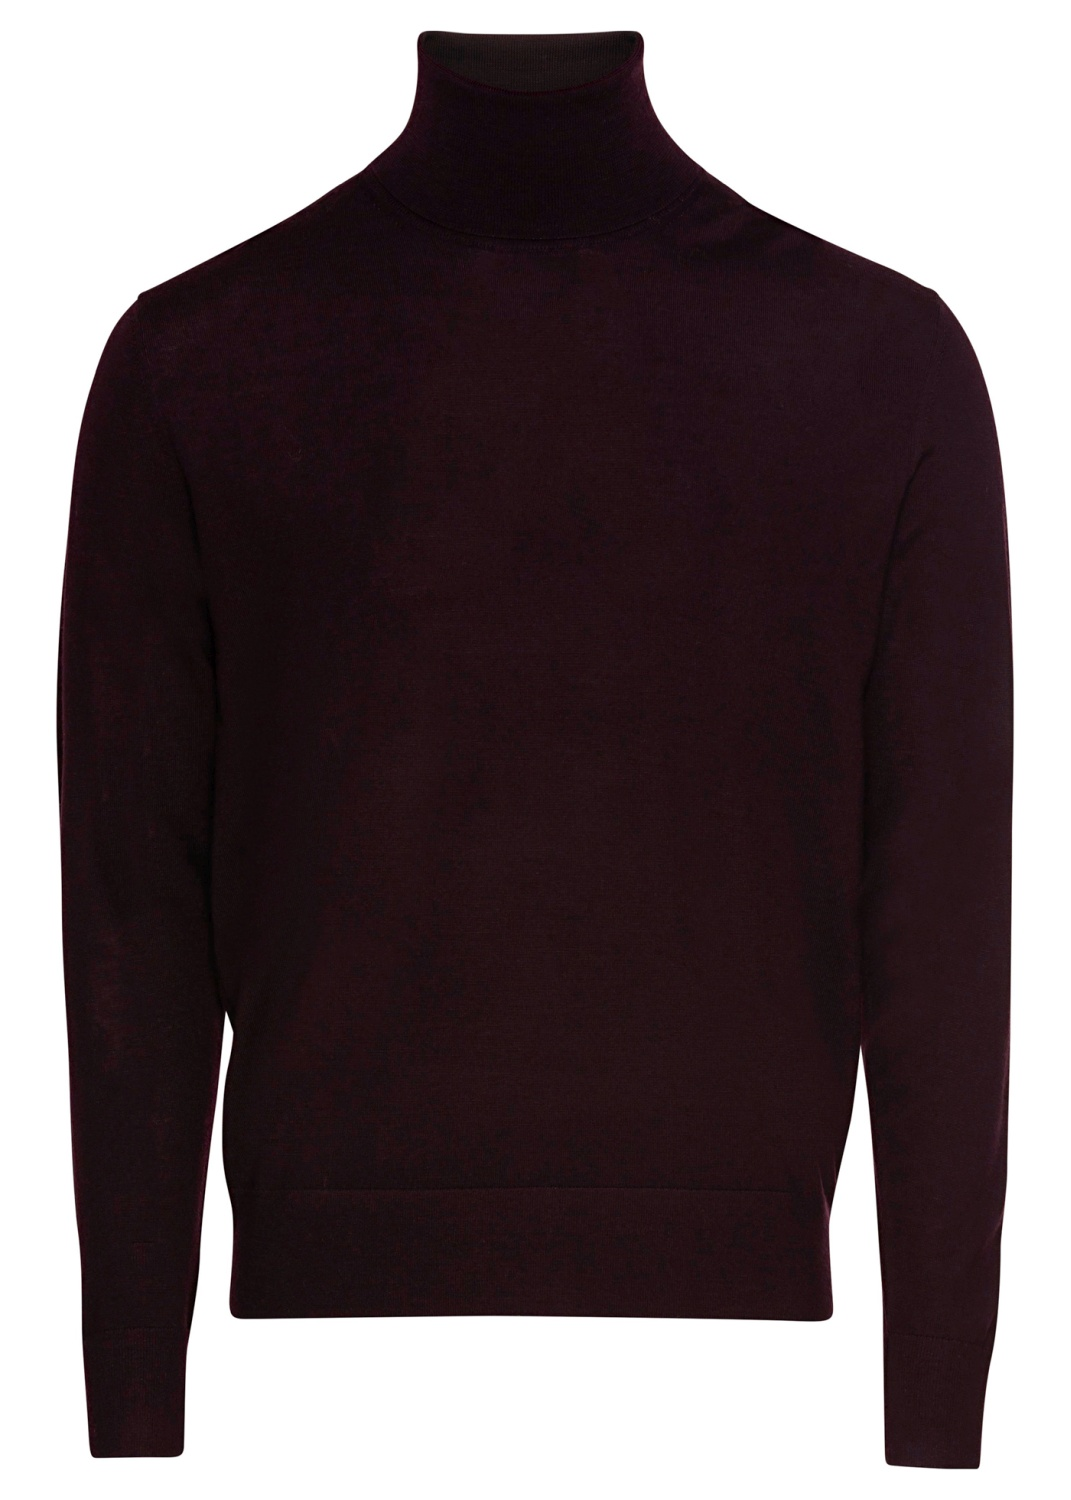 MIGUEL 1700 M.K.SWEATER image number 0